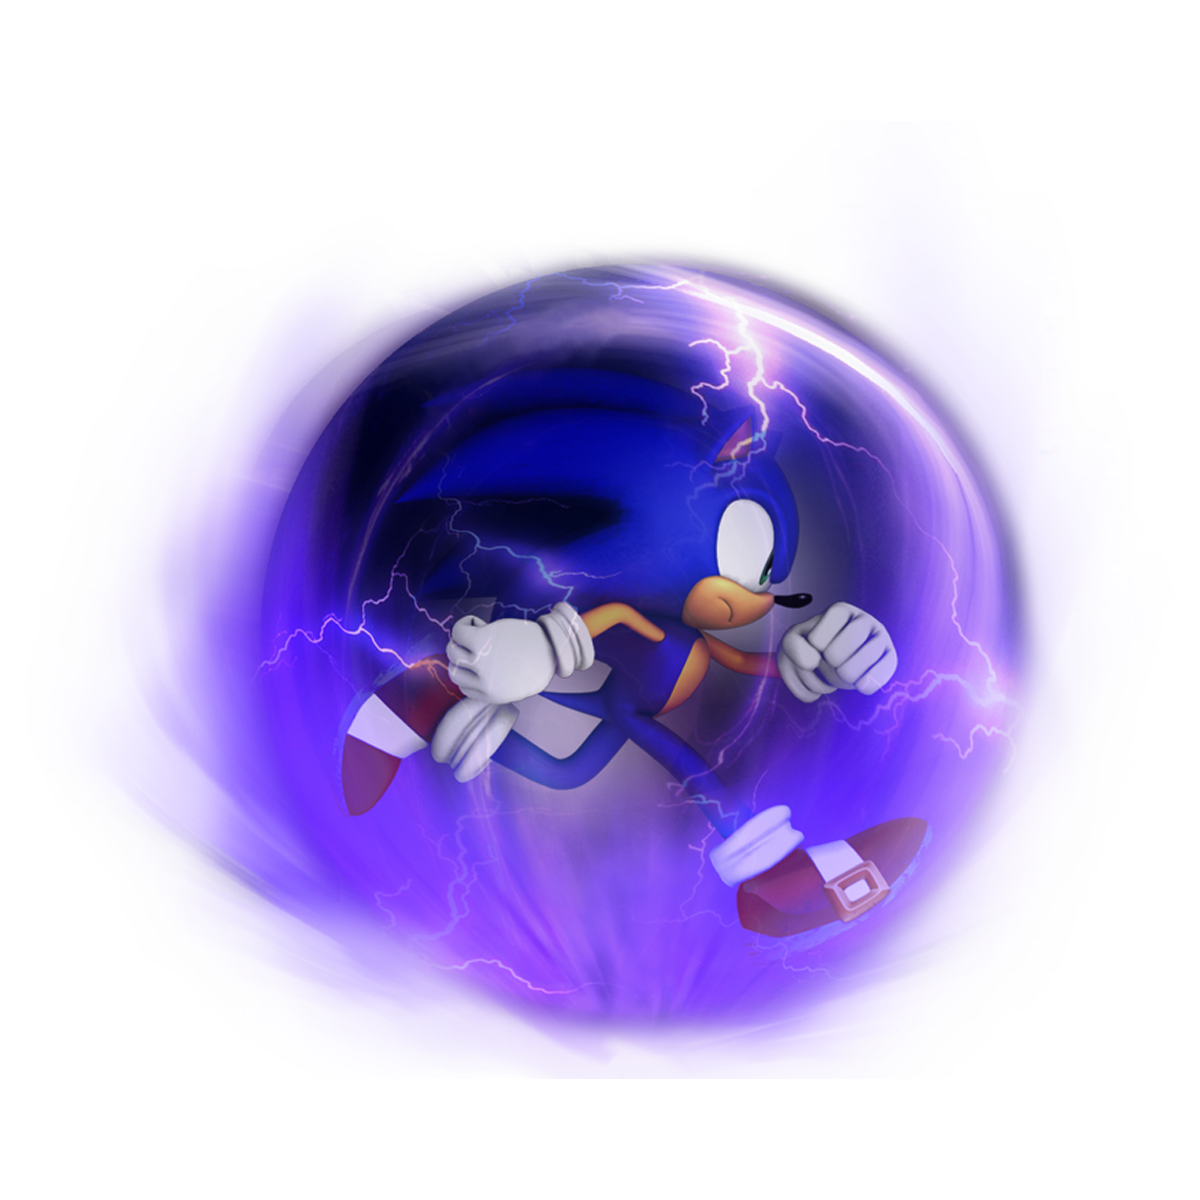 Sonic 4 Episode 2 Shield by darkfailure